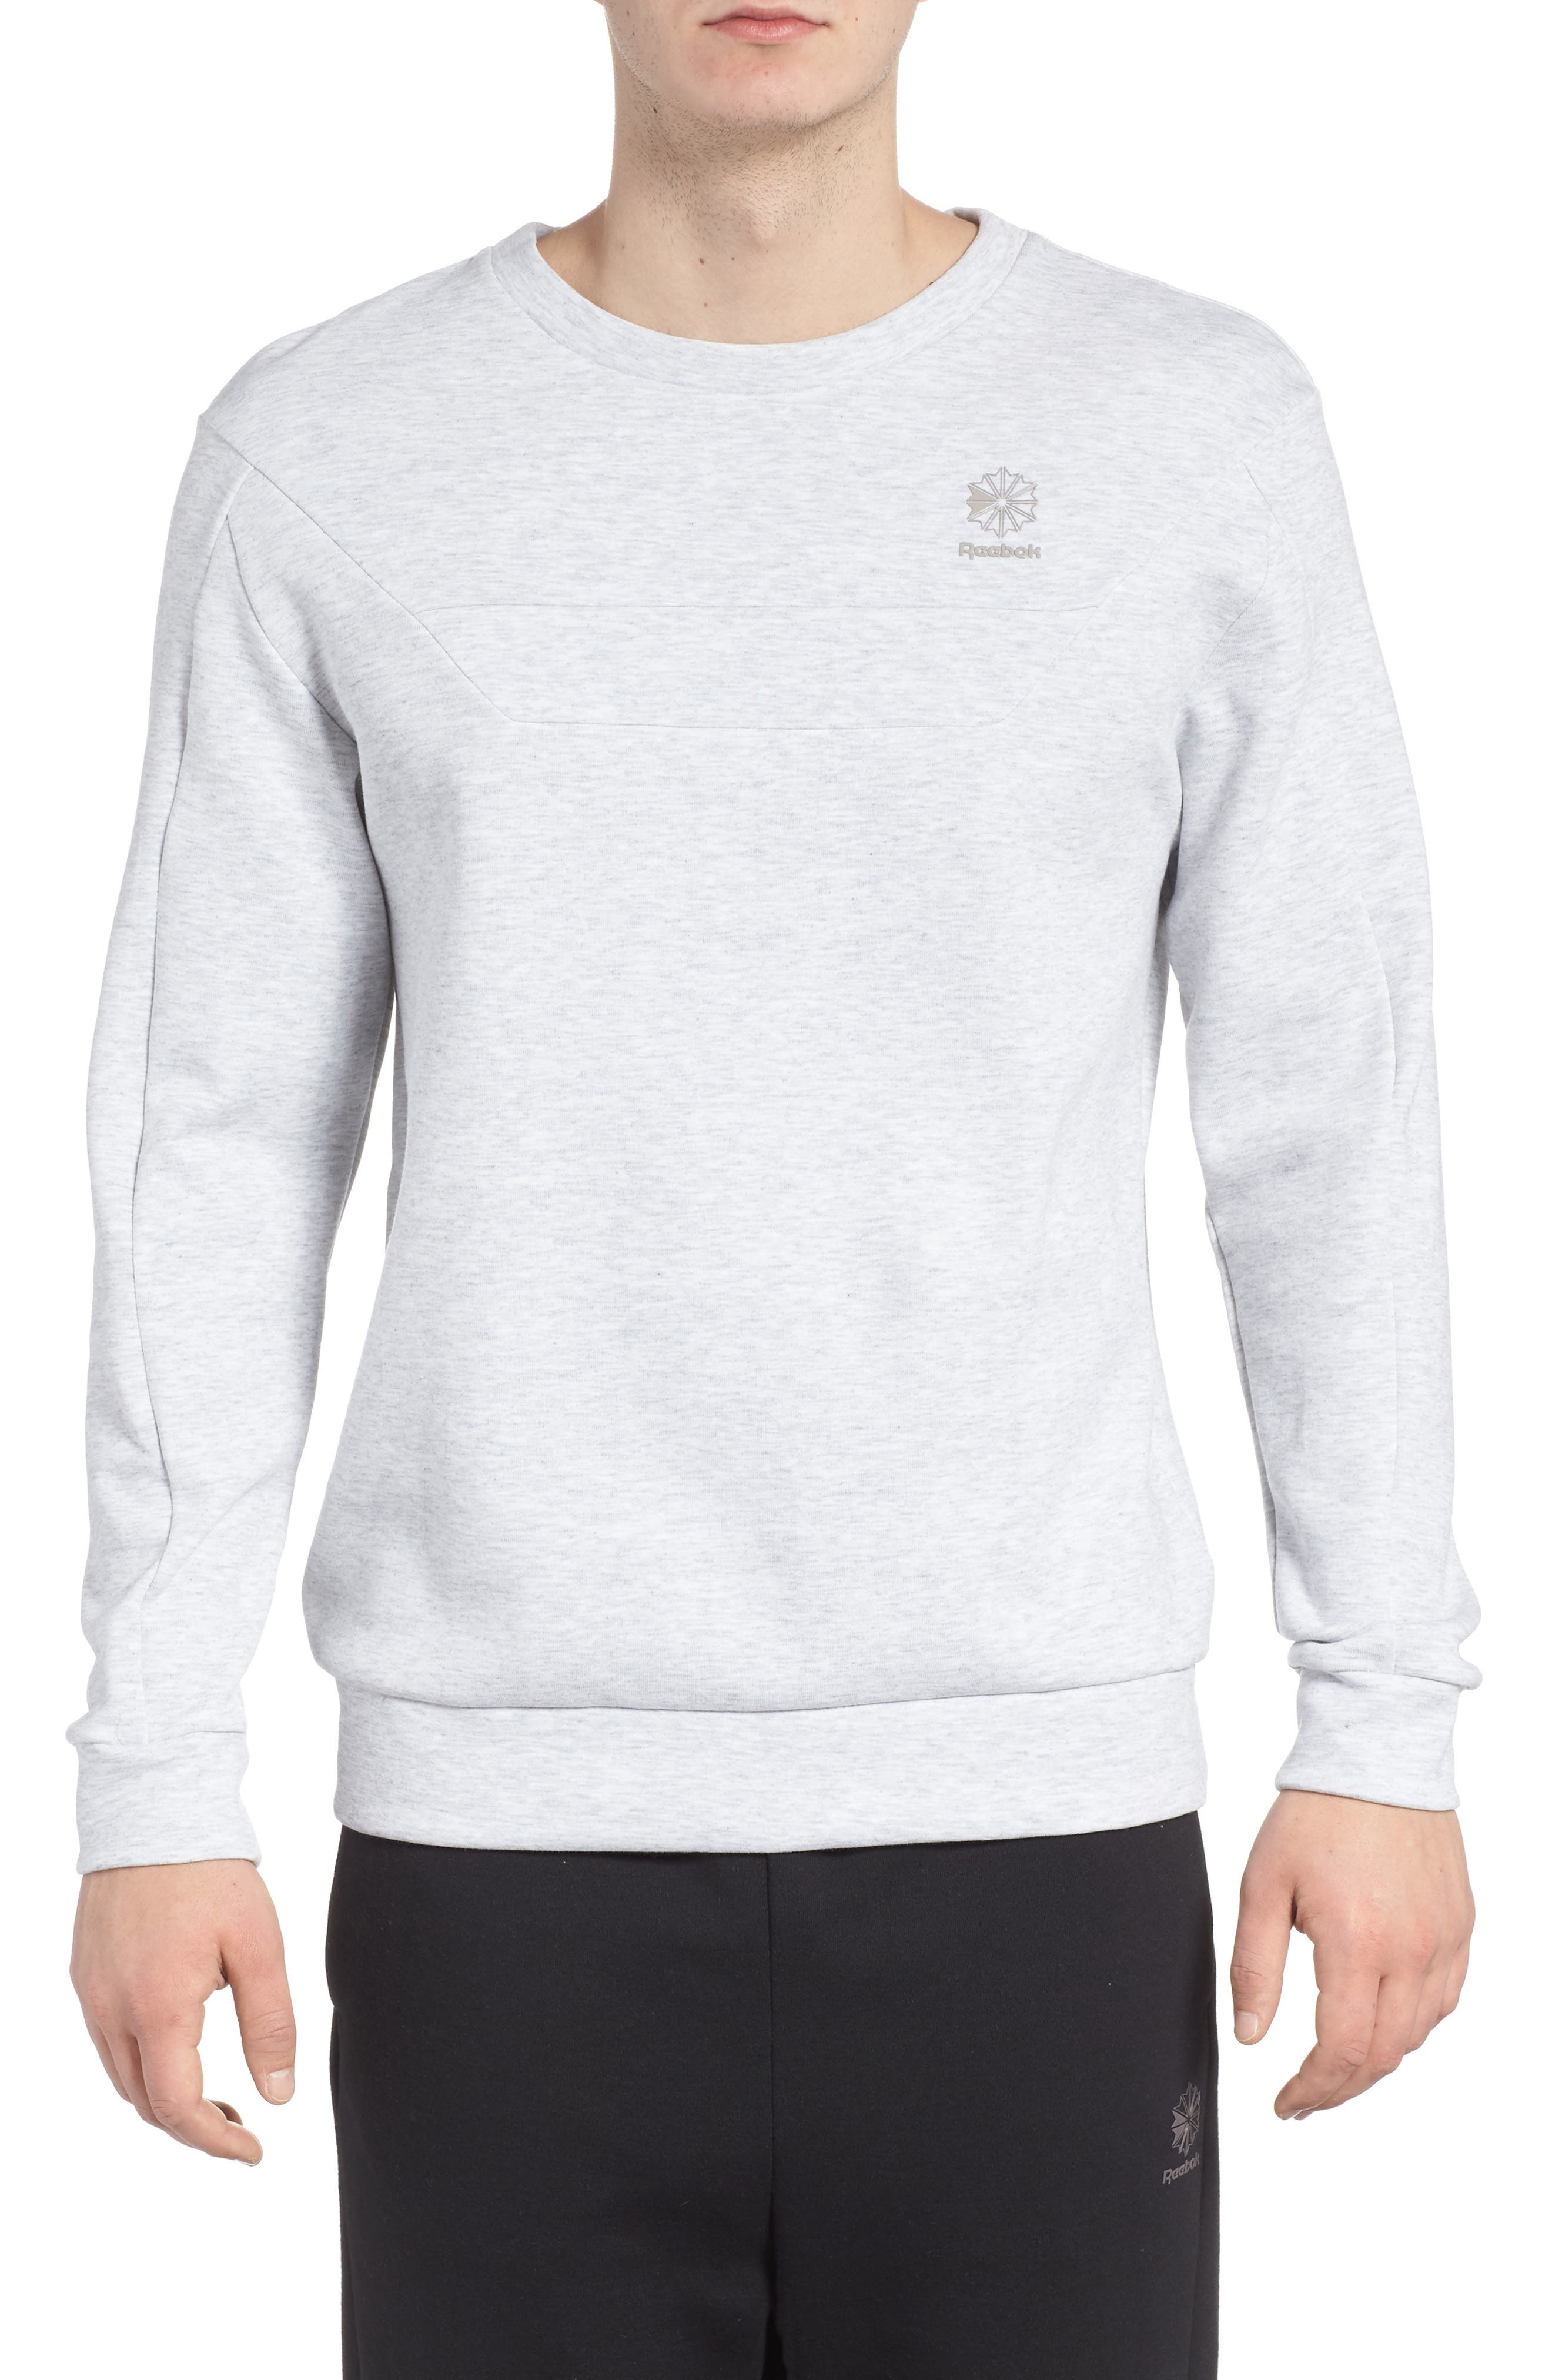 Double Sweatshirt,                             Main thumbnail 1, color,                             Light Grey Heather